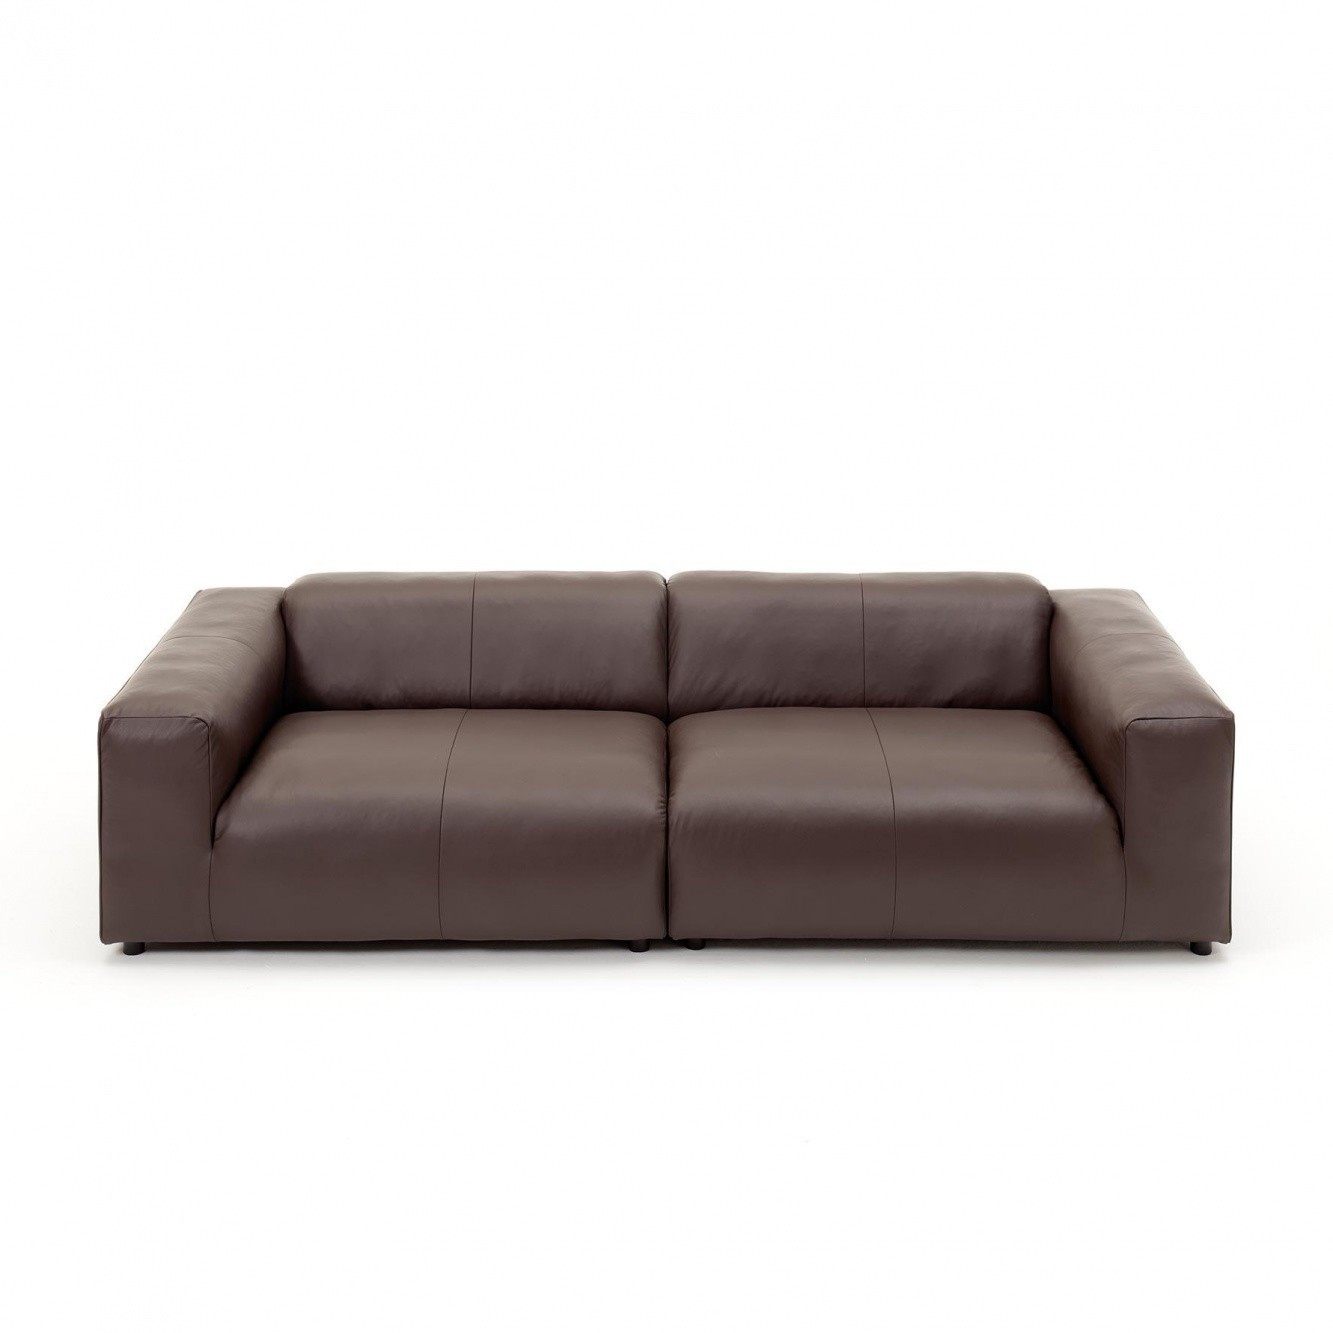 rolf benz freistil sofa no 180 valencia leather recliner suite reviews 187 3 seater ambientedirect